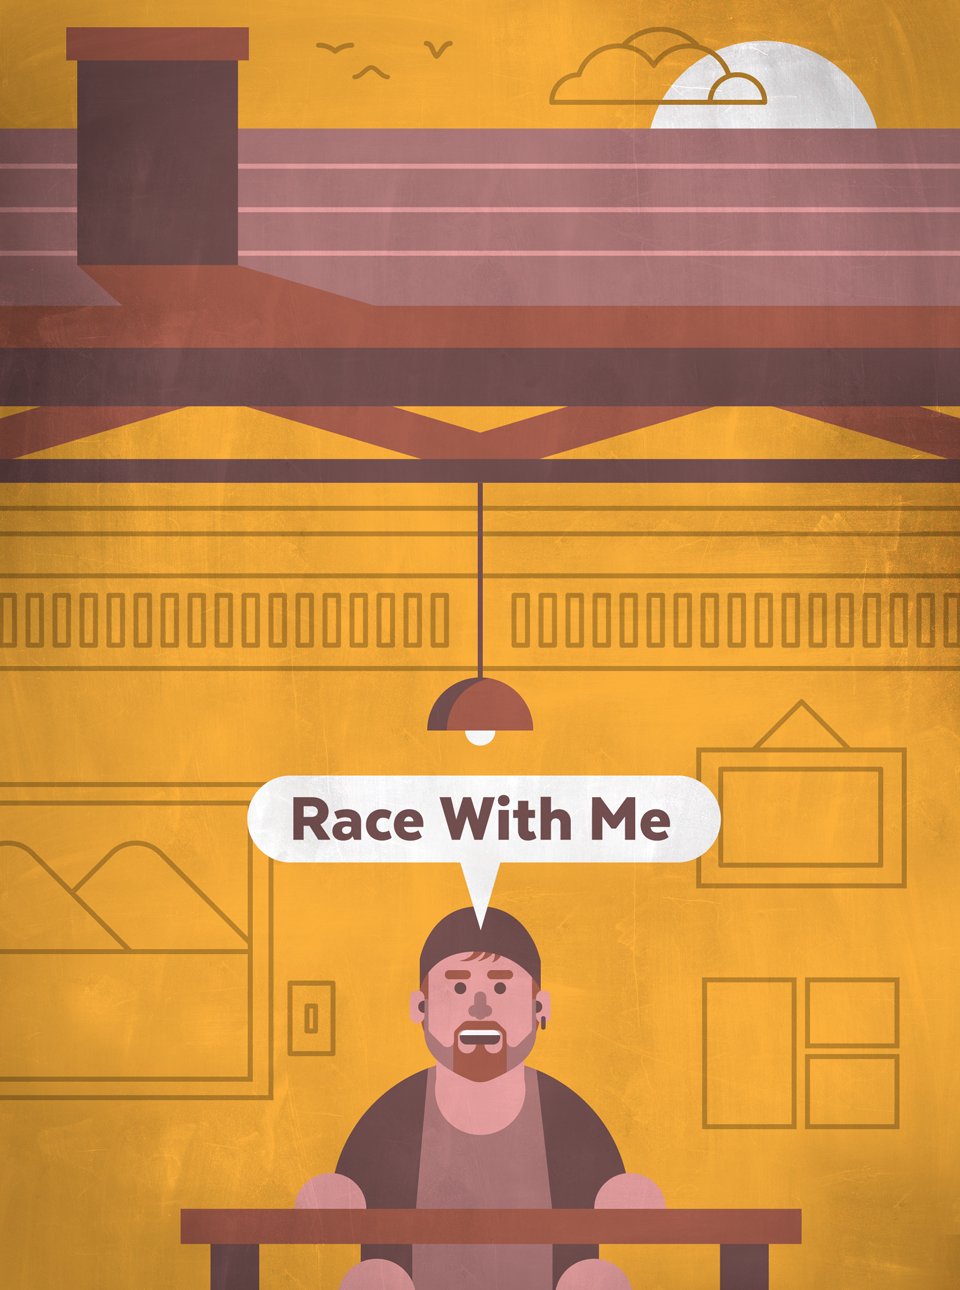 Race with me